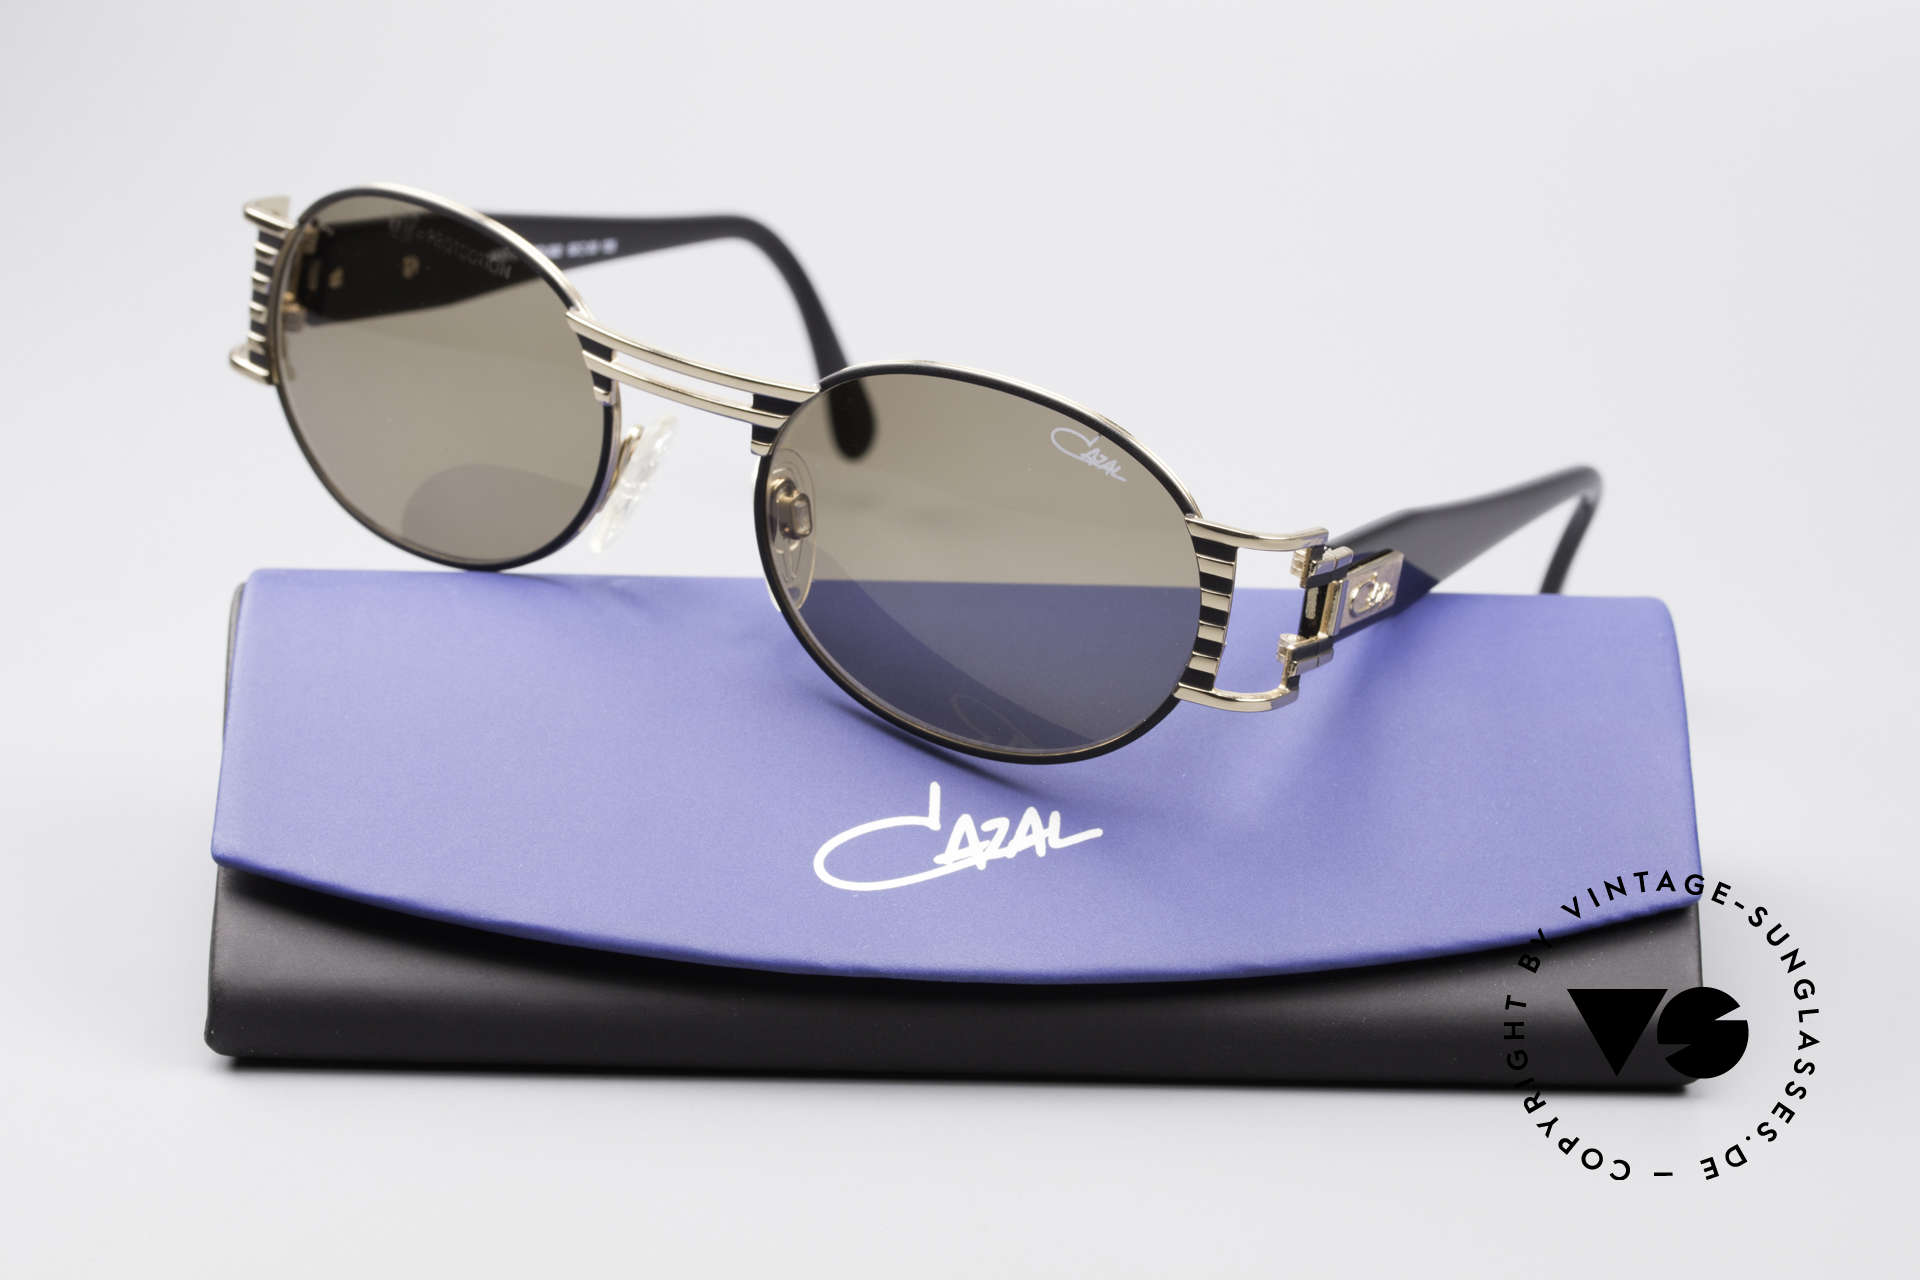 Cazal 976 90's Vintage Sunglasses Oval, NO retro sunglasses, but an authentic old original, Made for Men and Women